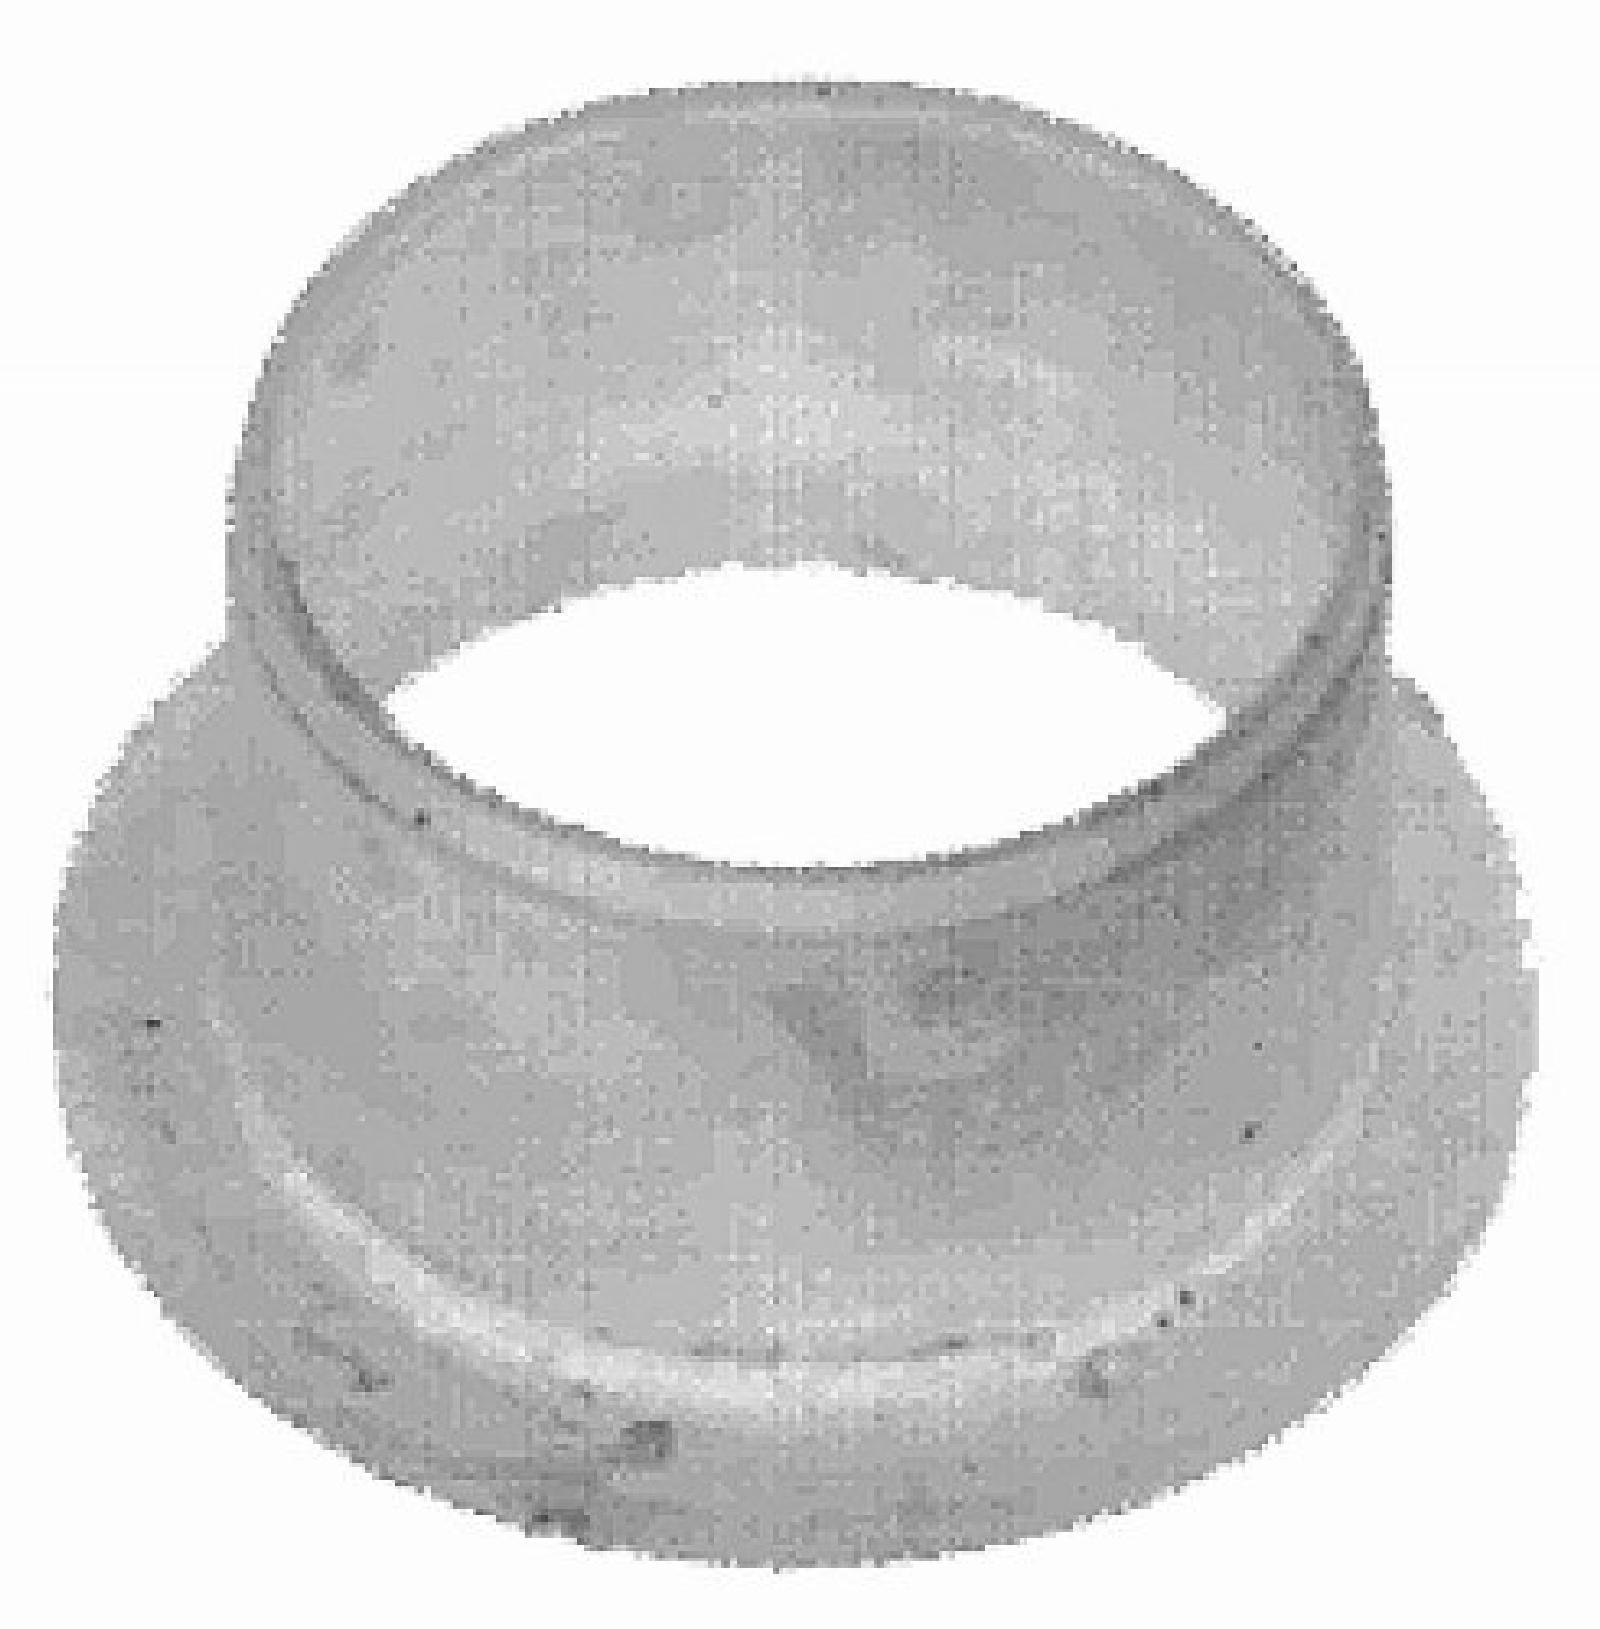 BUSHING 29/32 X 31/ part# 2940 by Rotary